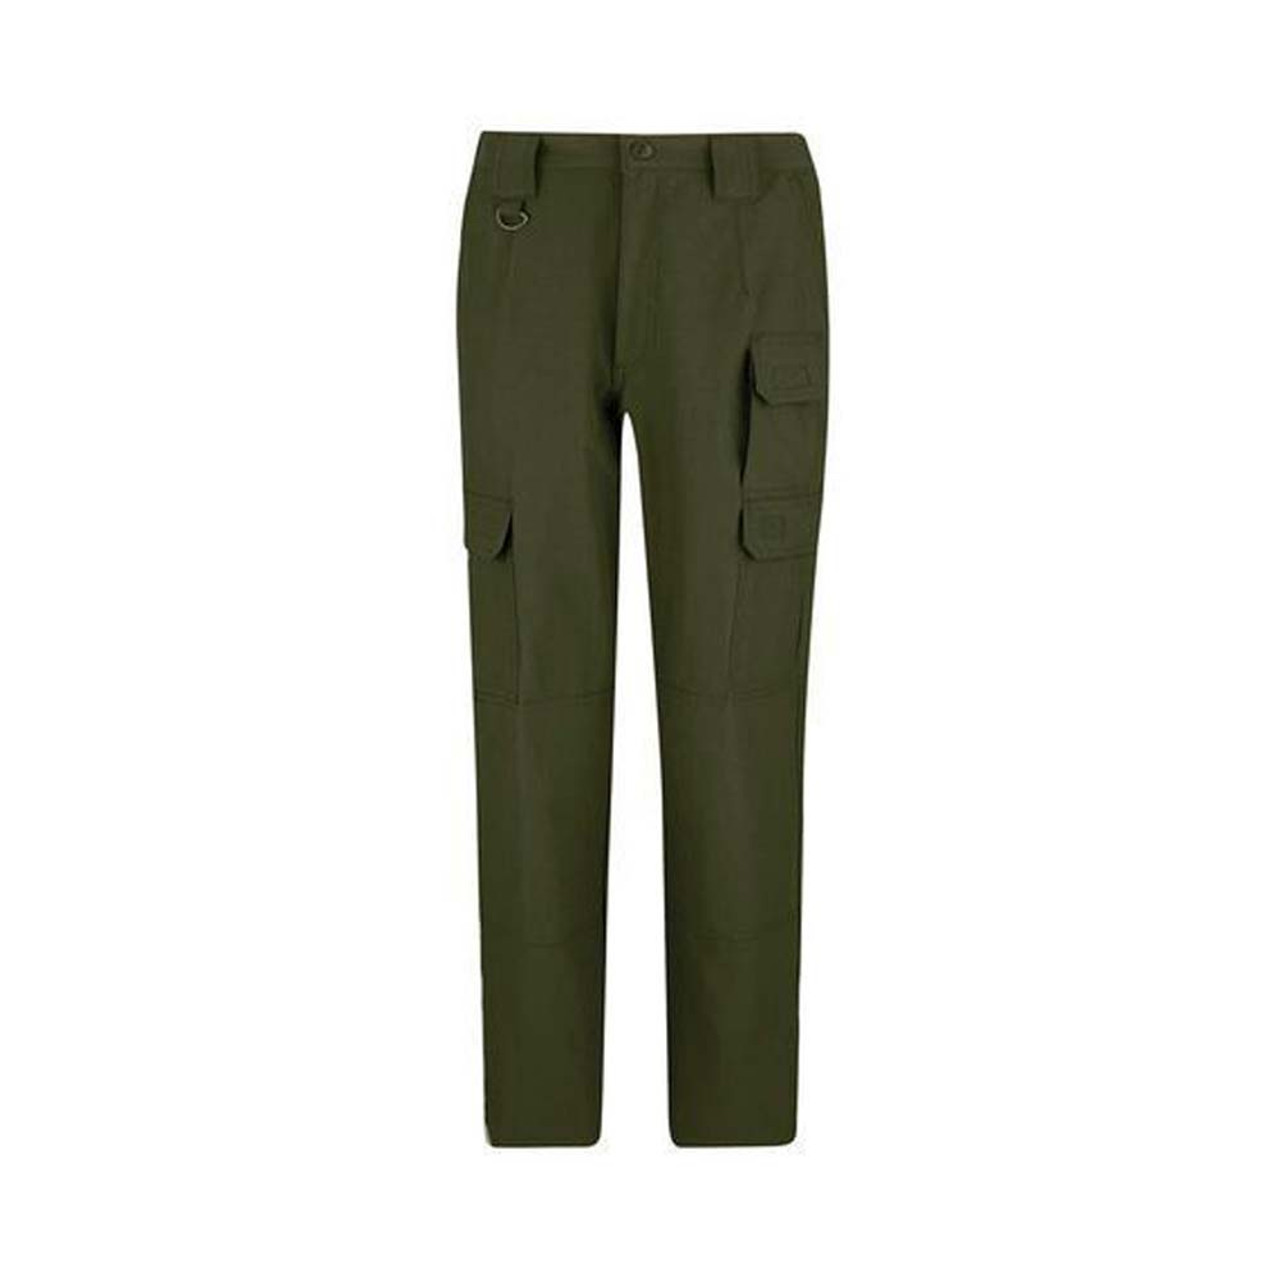 Propper F5295-2Y Women's Stretch Tactical Pants, Relaxed Fit, Nylon/Spandex micro ripstop with Teflon fabric protector, Knee Pad Pockets, Ammo Pokcet, available in Black, Khaki, Olive Green, or LAPD Navy